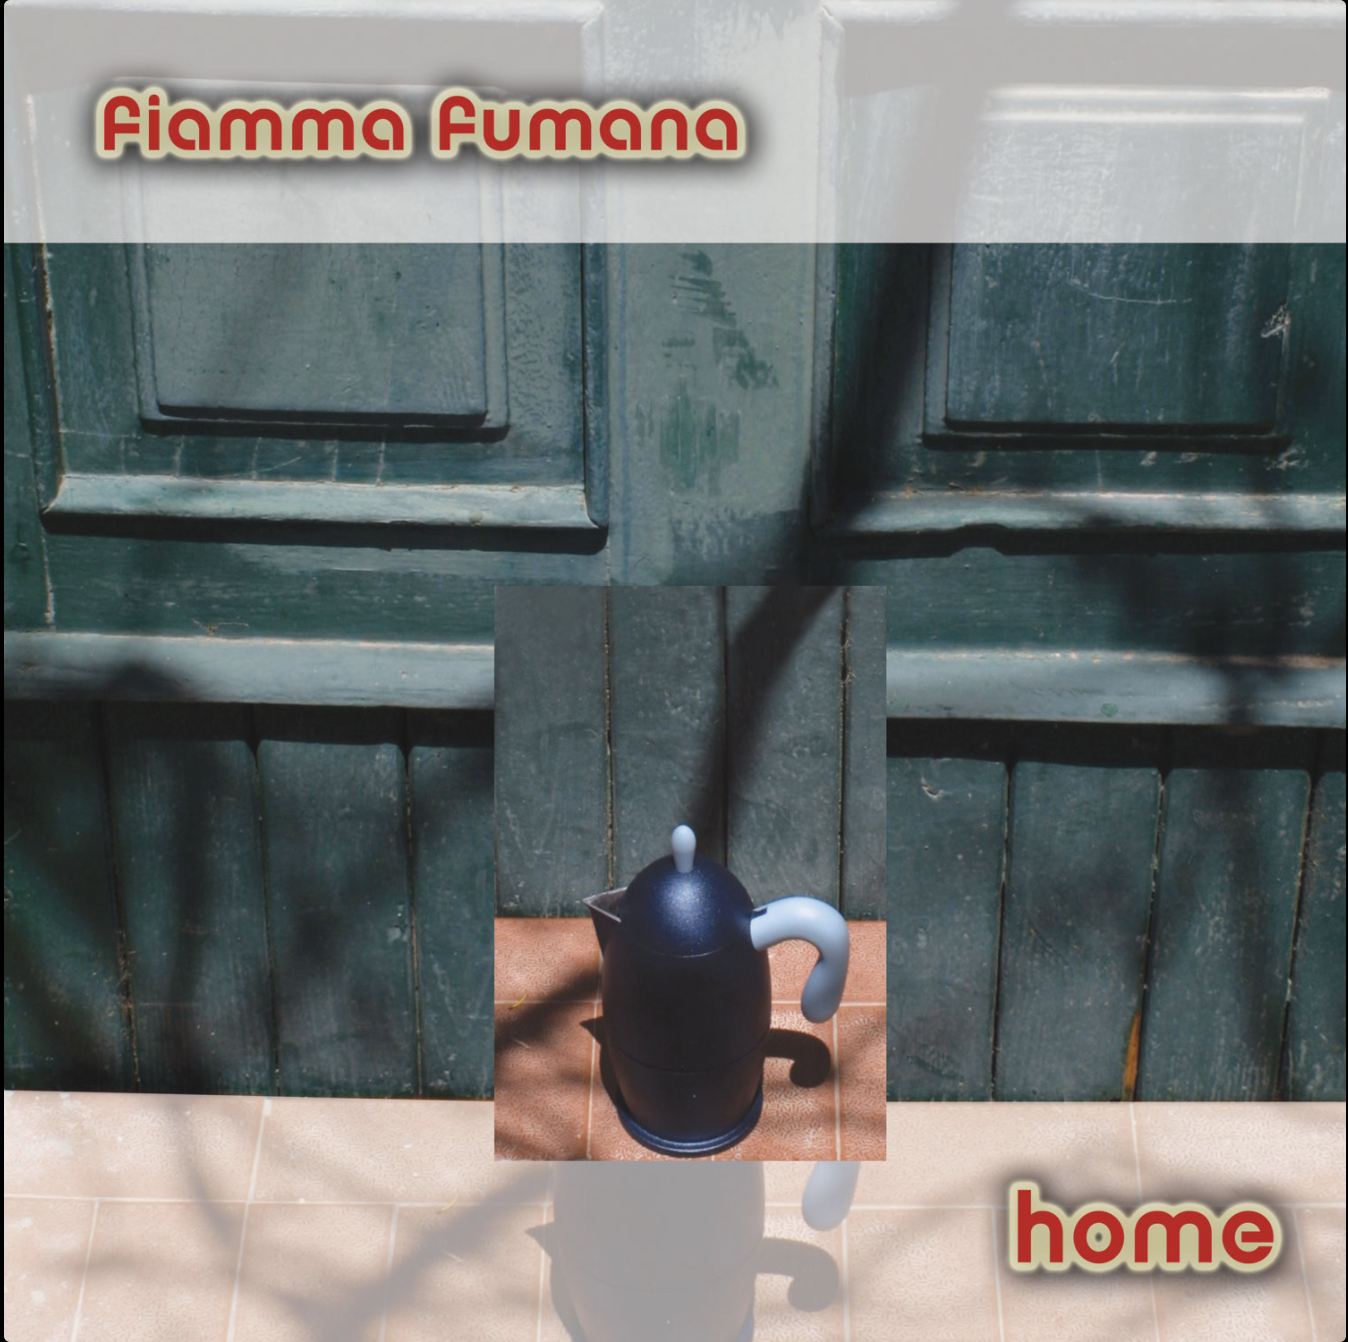 Home cover.jpg